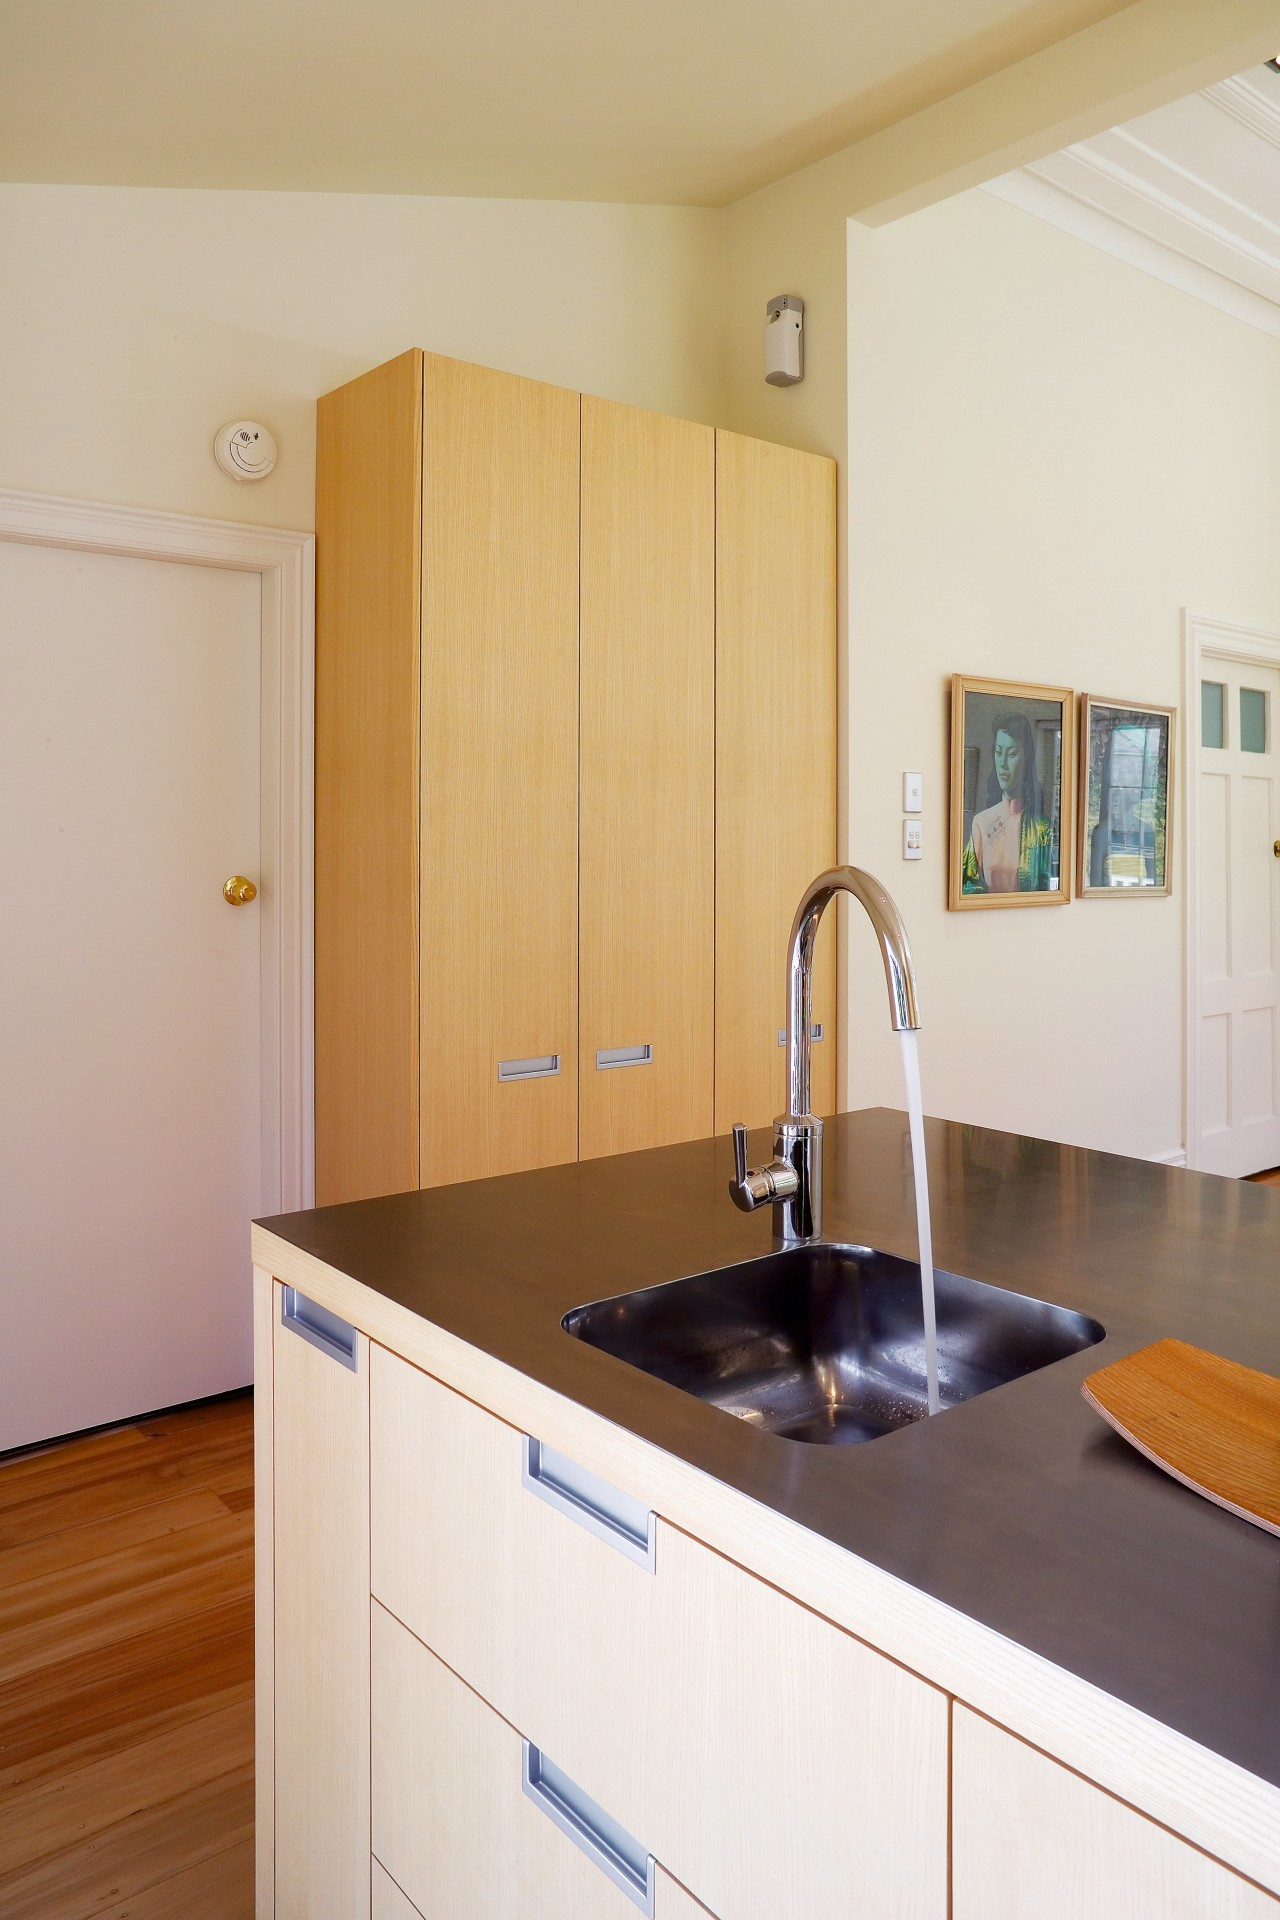 A close up view of the kitchen sink. cabinetry, countertop, floor, interior design, kitchen, real estate, room, sink, white, orange